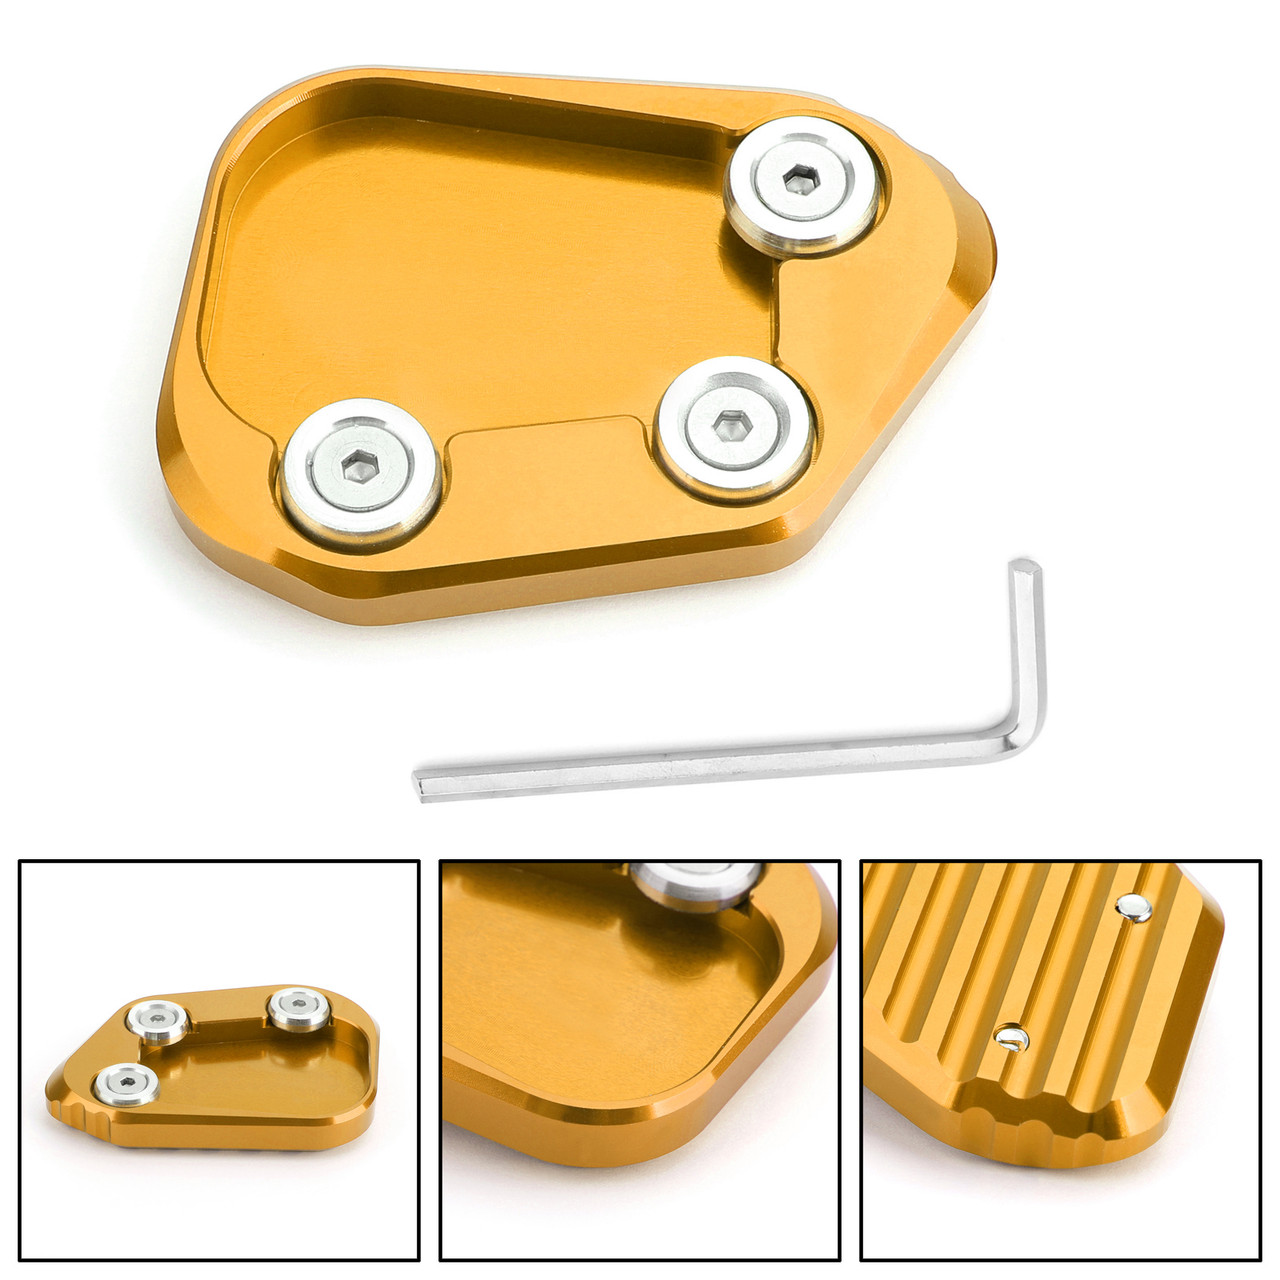 Kickstand Side Stand Extension Enlarger Pad For Honda CBR250RR 17-18 Gold